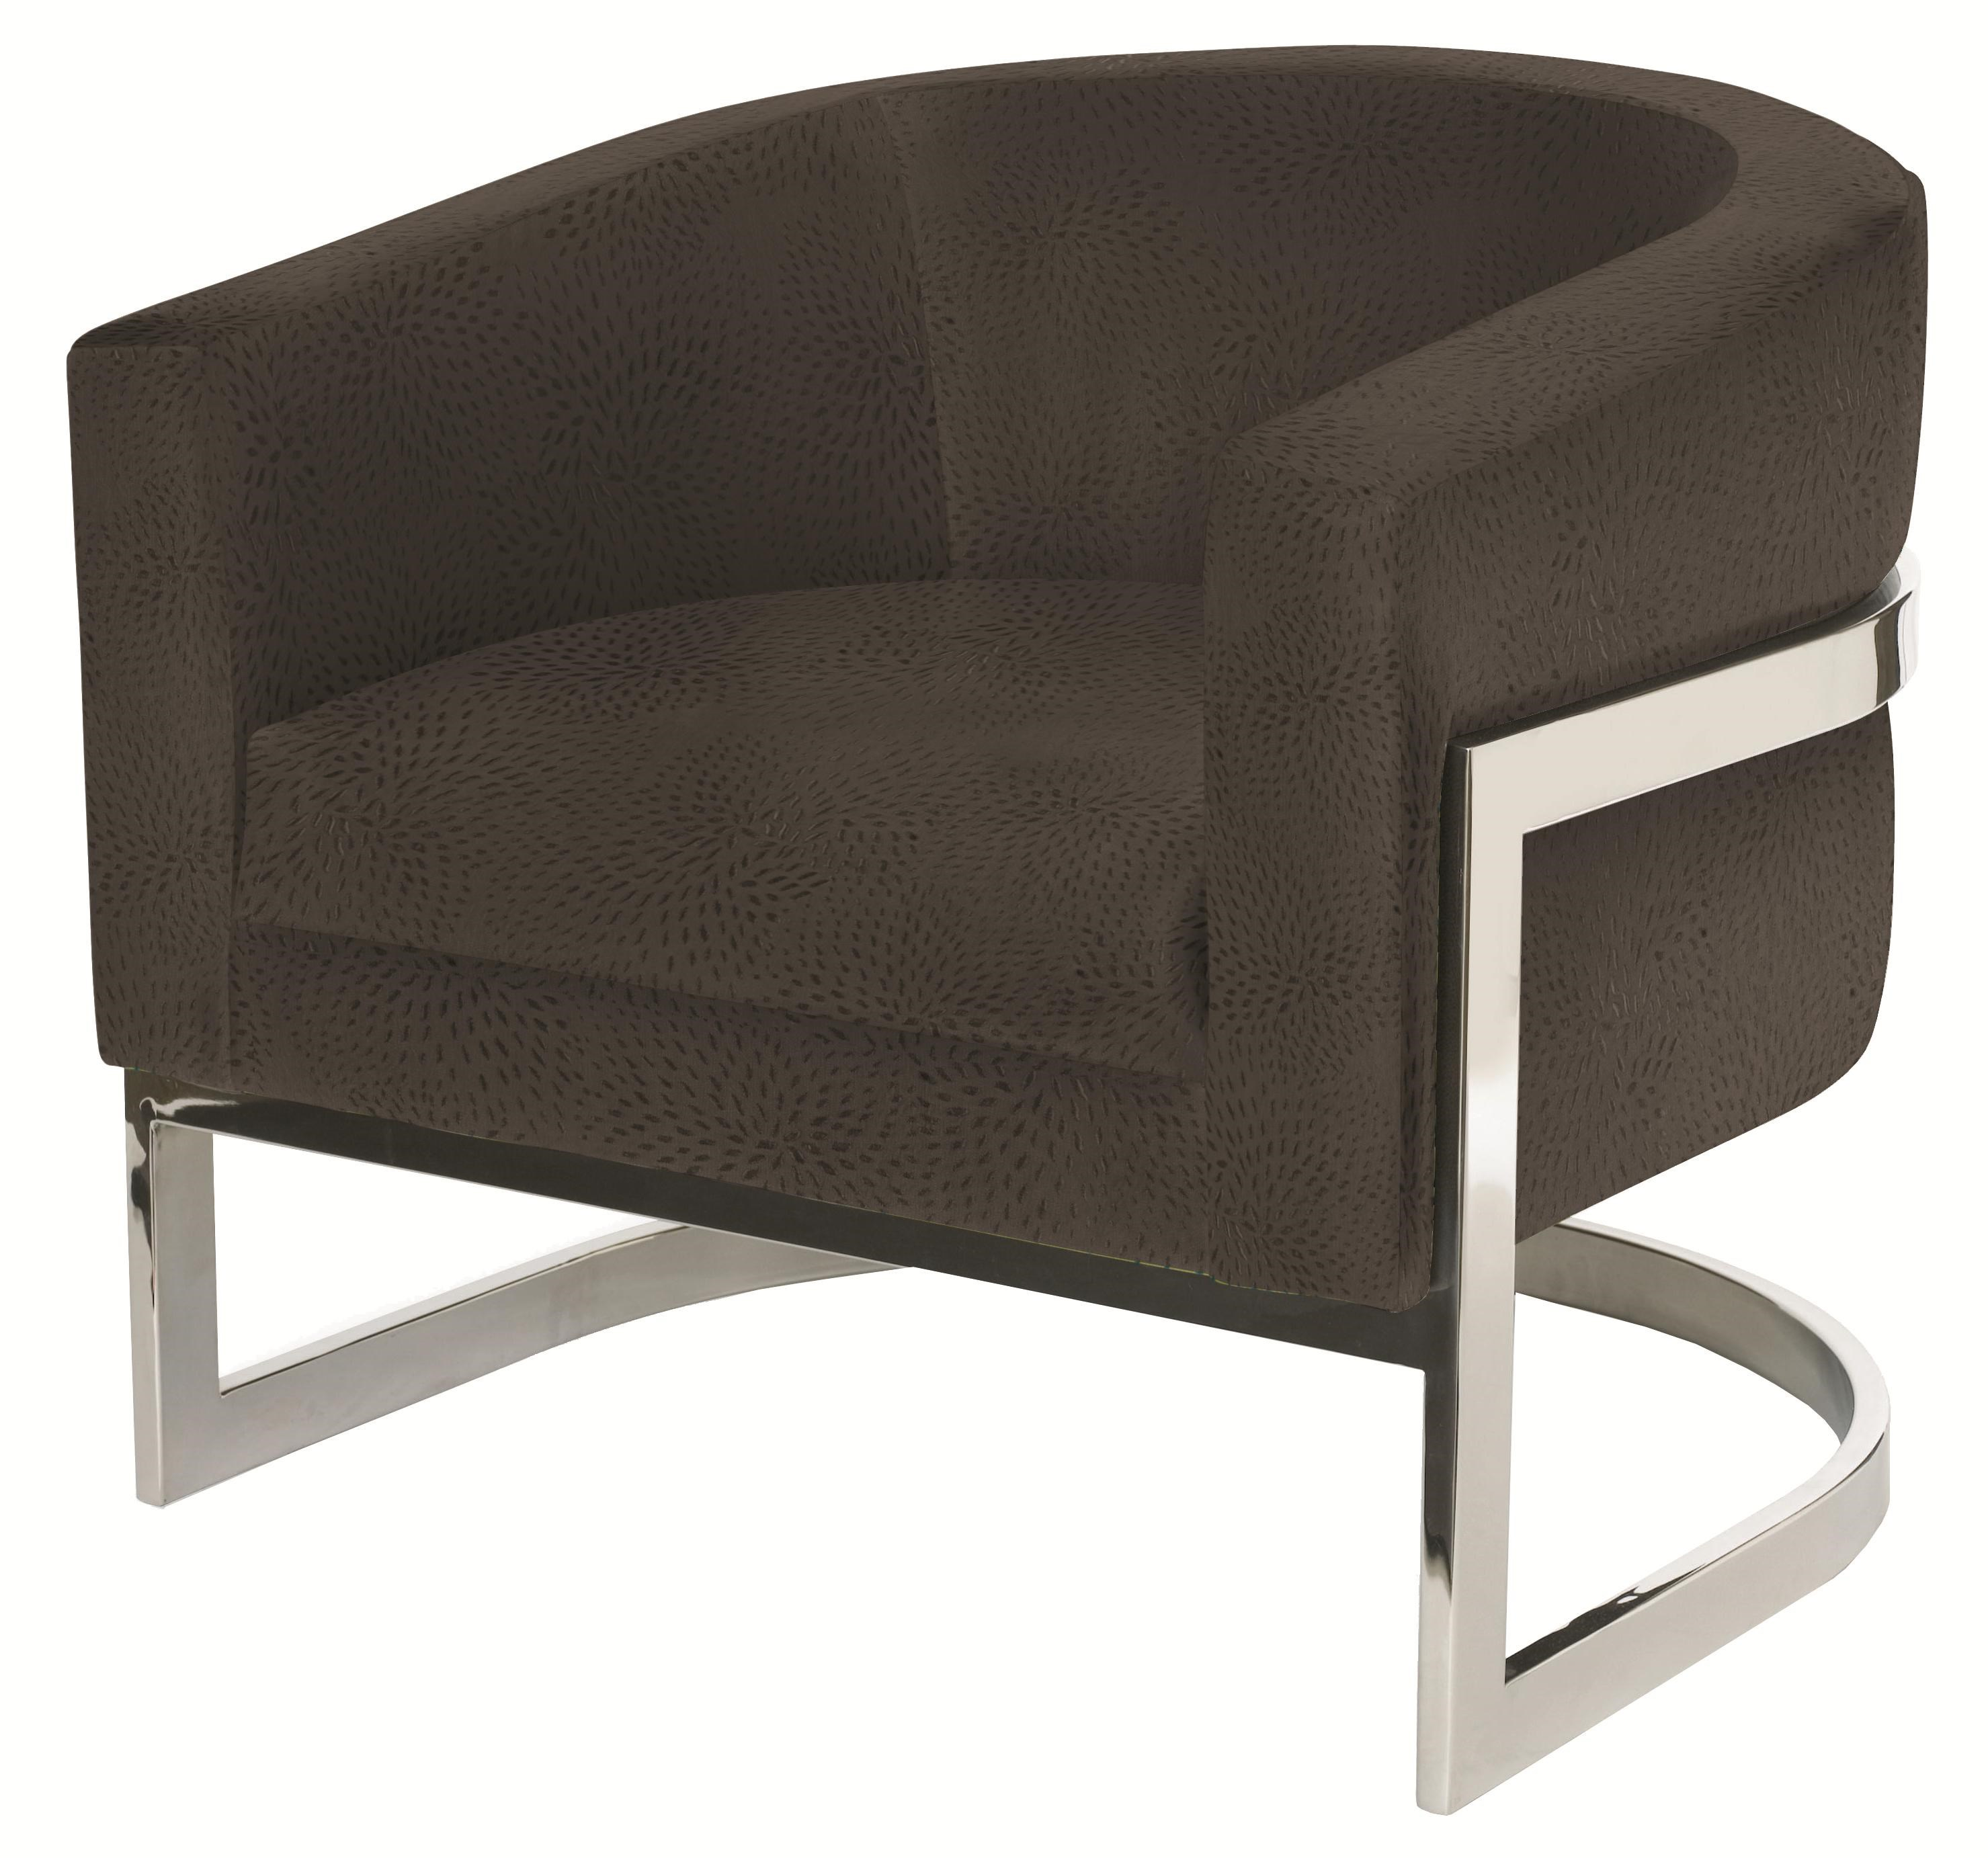 Bernhardt Upholstered Accents Callie Chair With Metal Legs